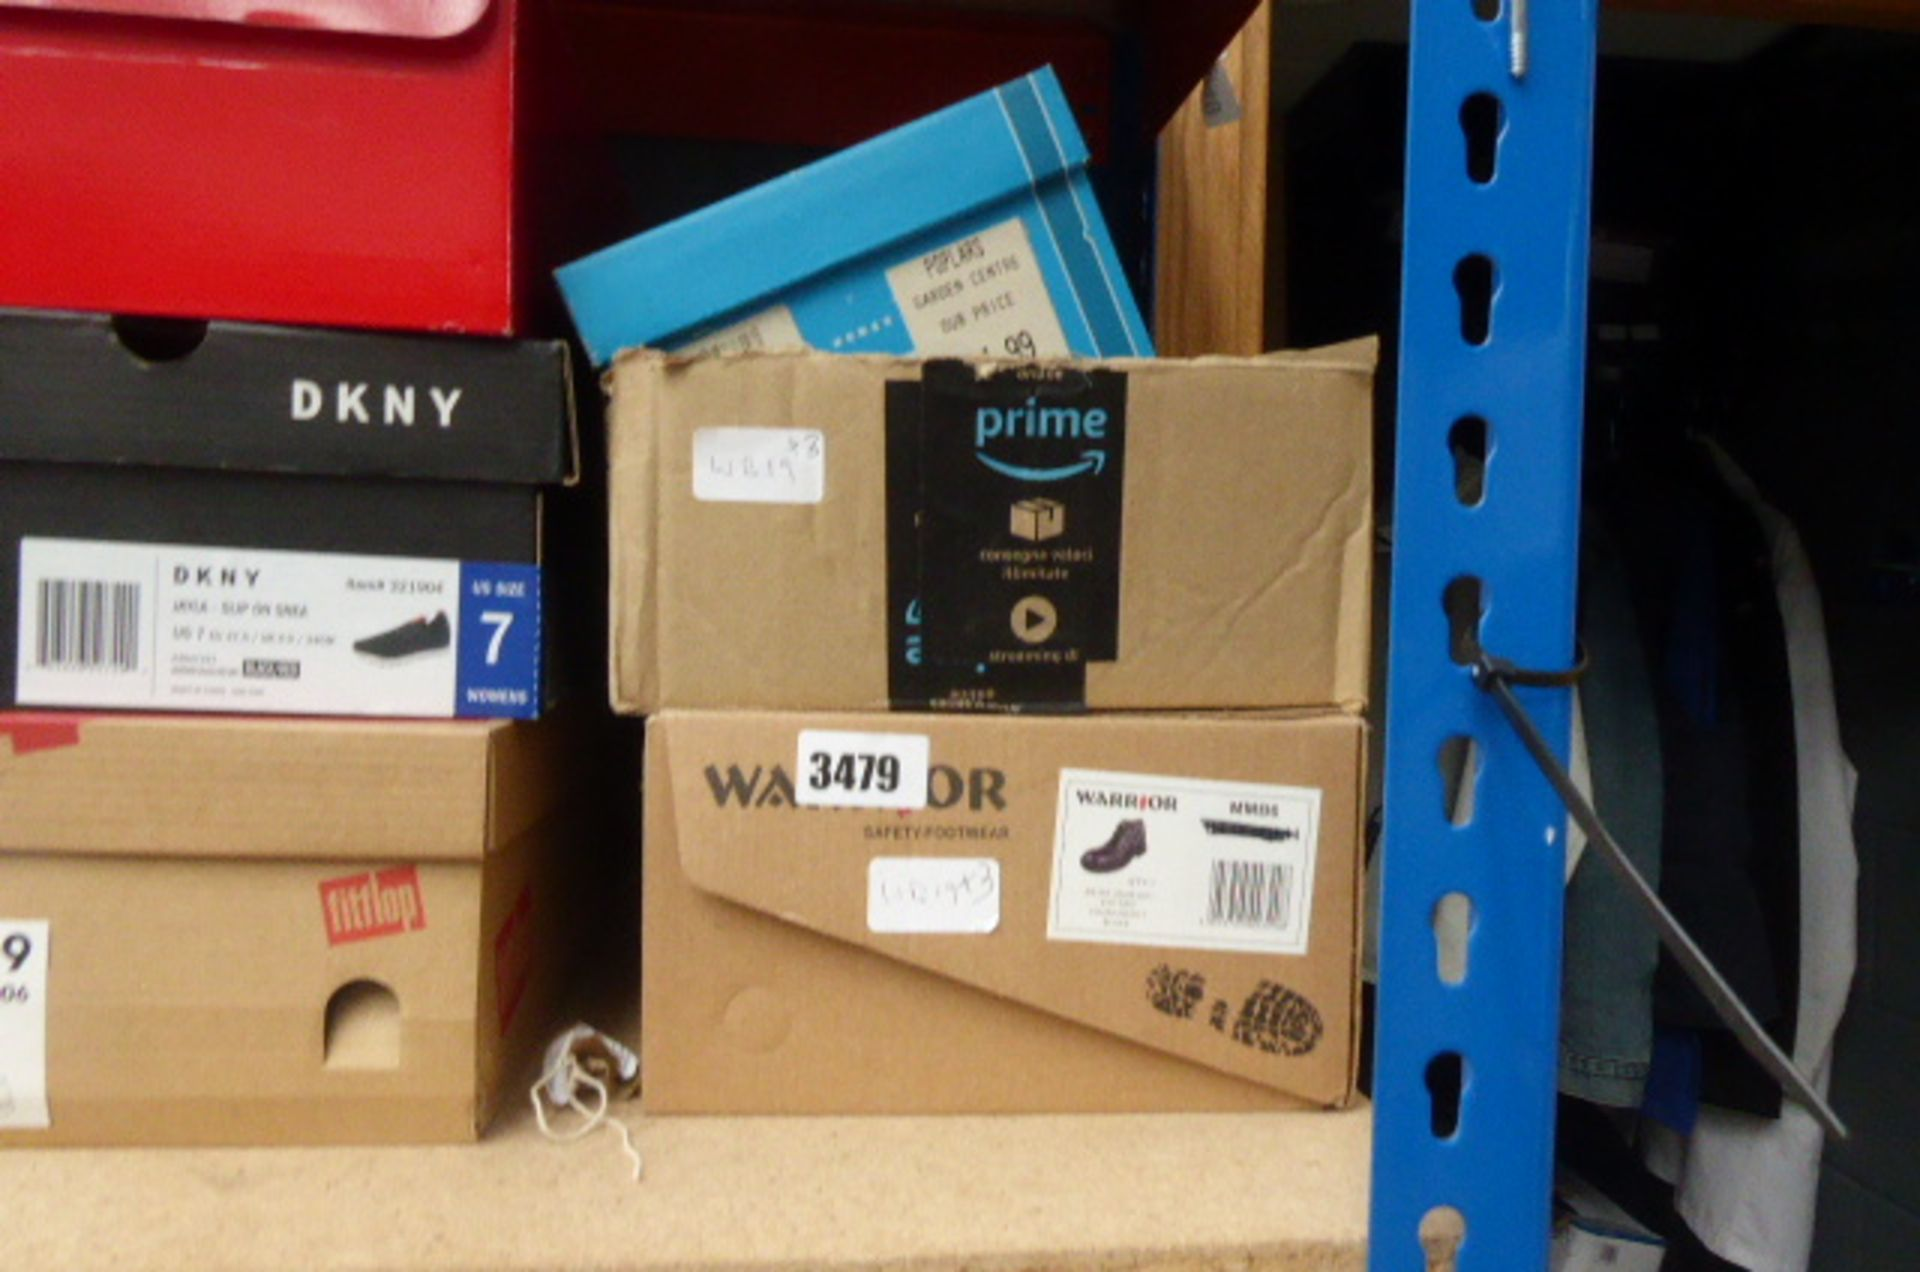 Lot 3479 - 3 boxed pairs of shoes incl. safety boots and 2 other pairs of shoes